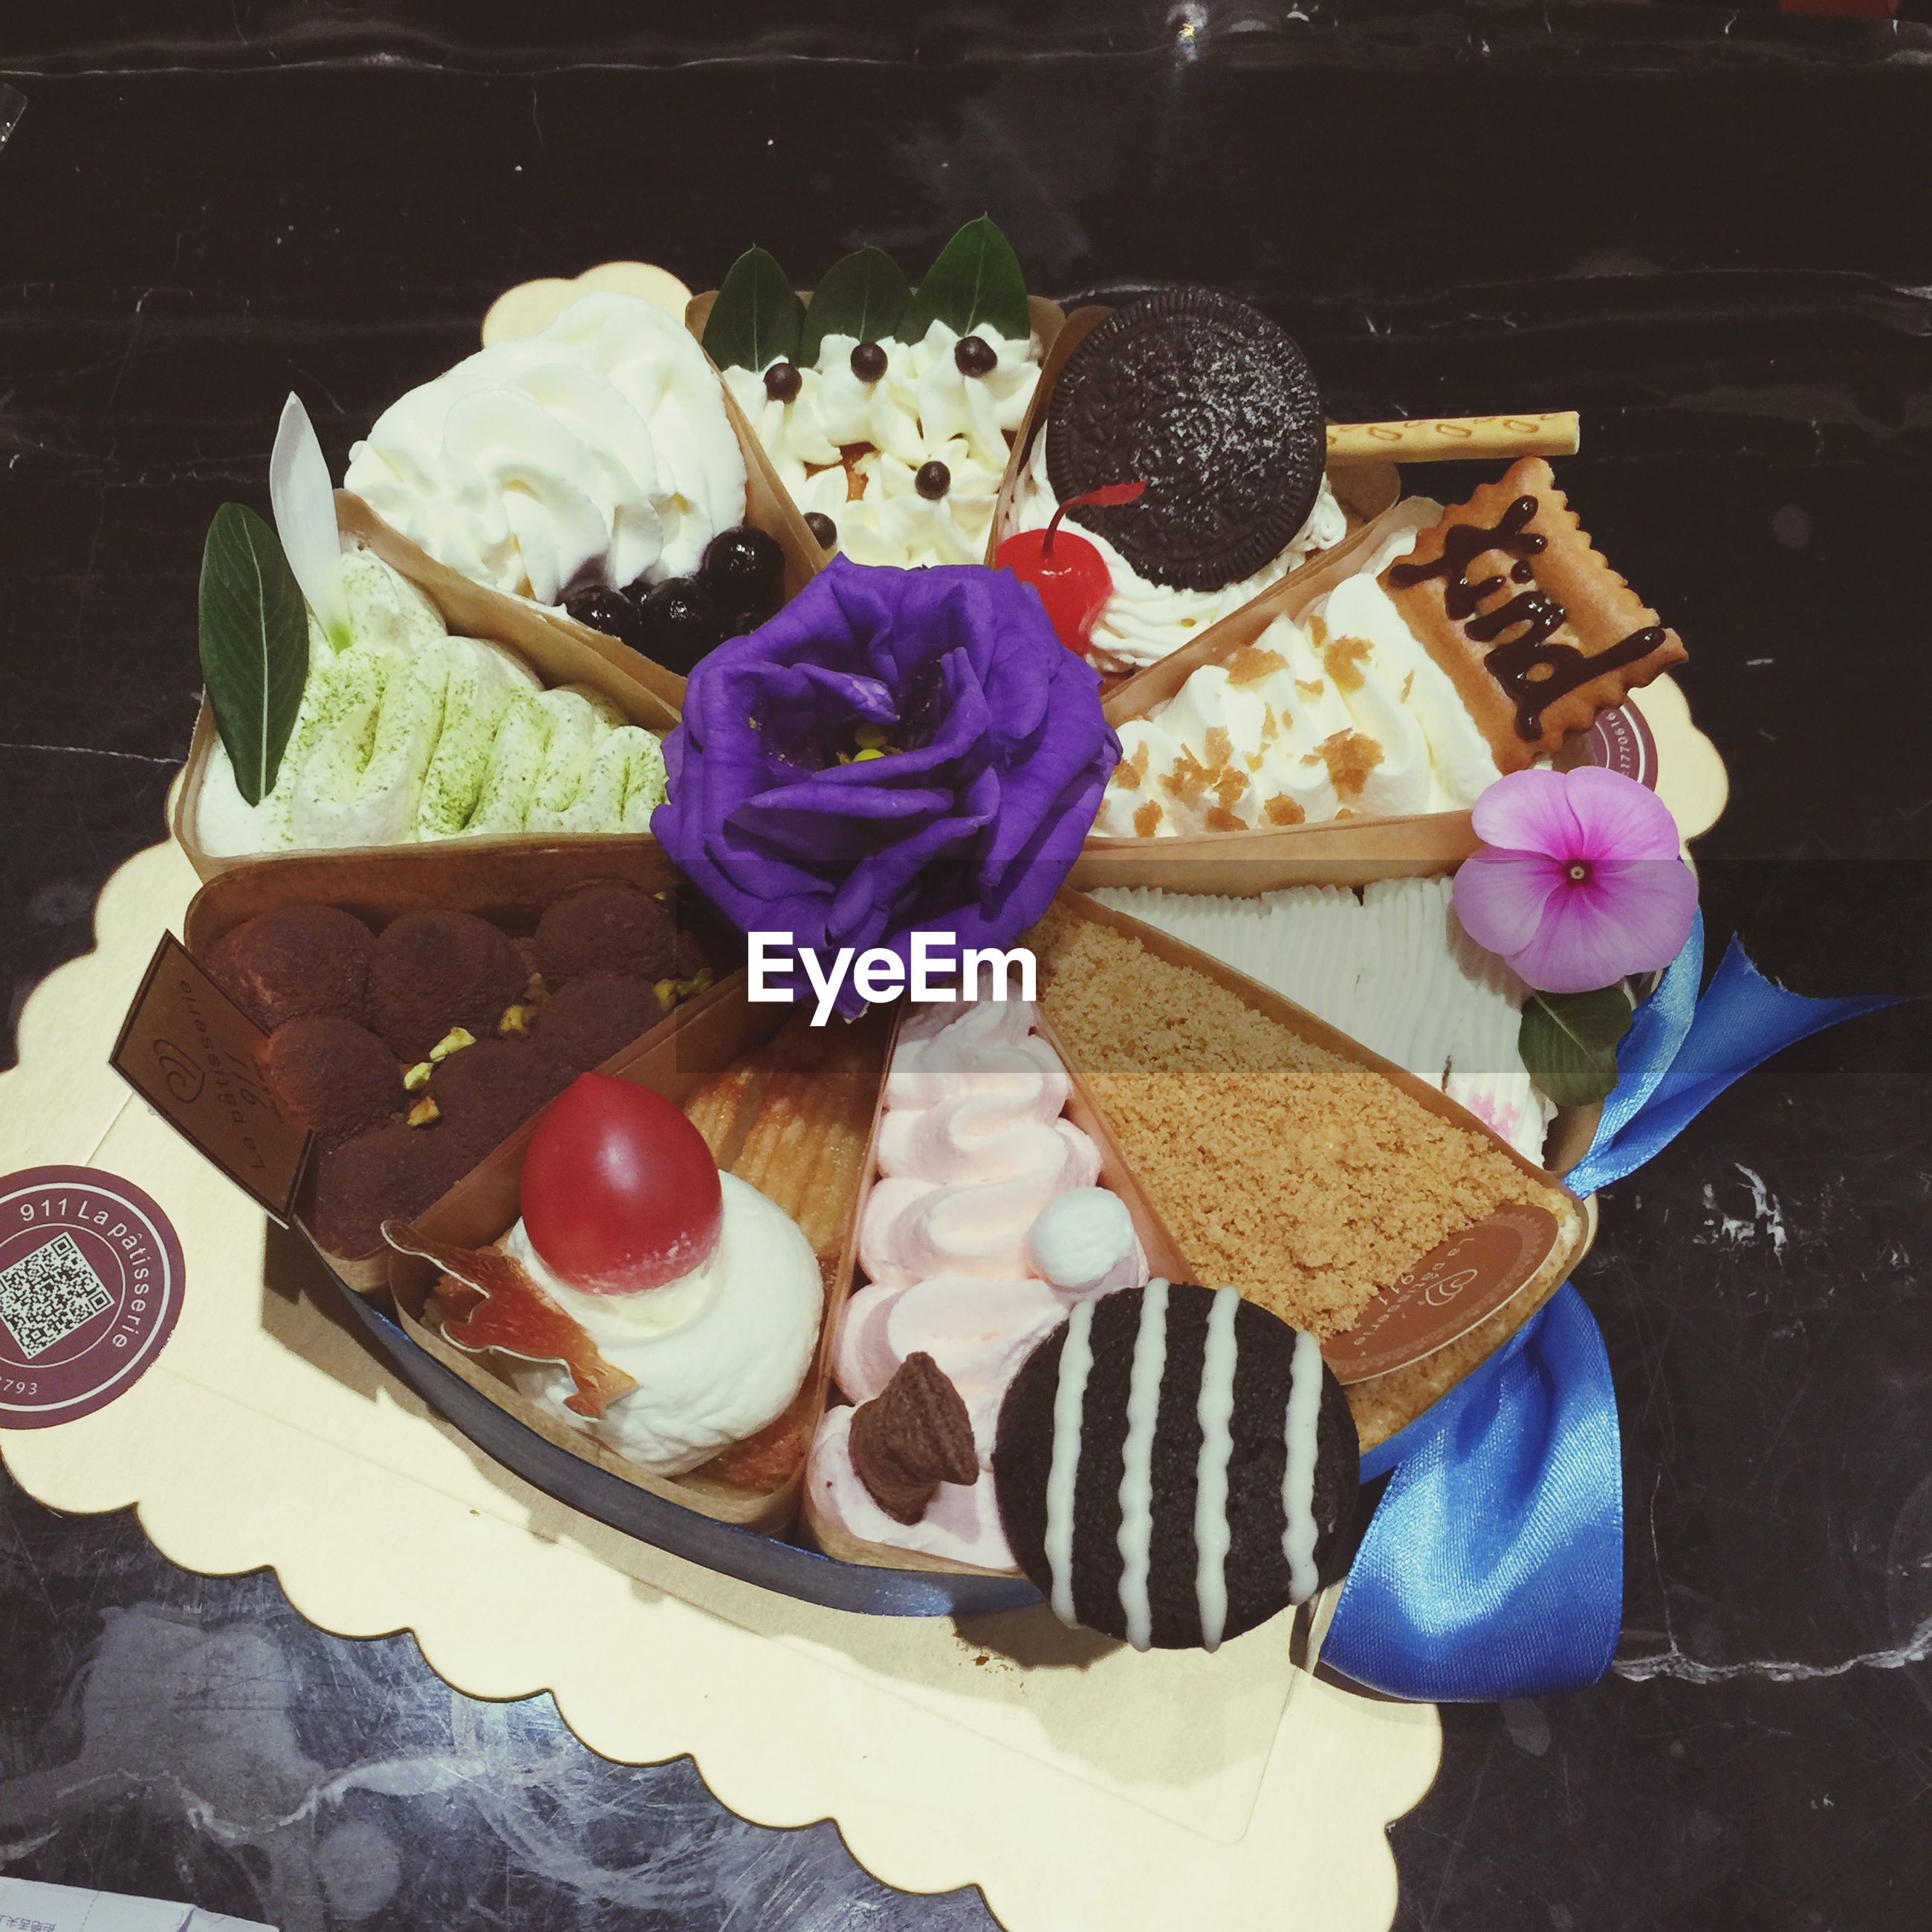 sweet food, freshness, dessert, food, food and drink, unhealthy eating, indulgence, still life, indoors, ready-to-eat, cake, temptation, table, flower, chocolate, high angle view, close-up, plate, cupcake, ice cream